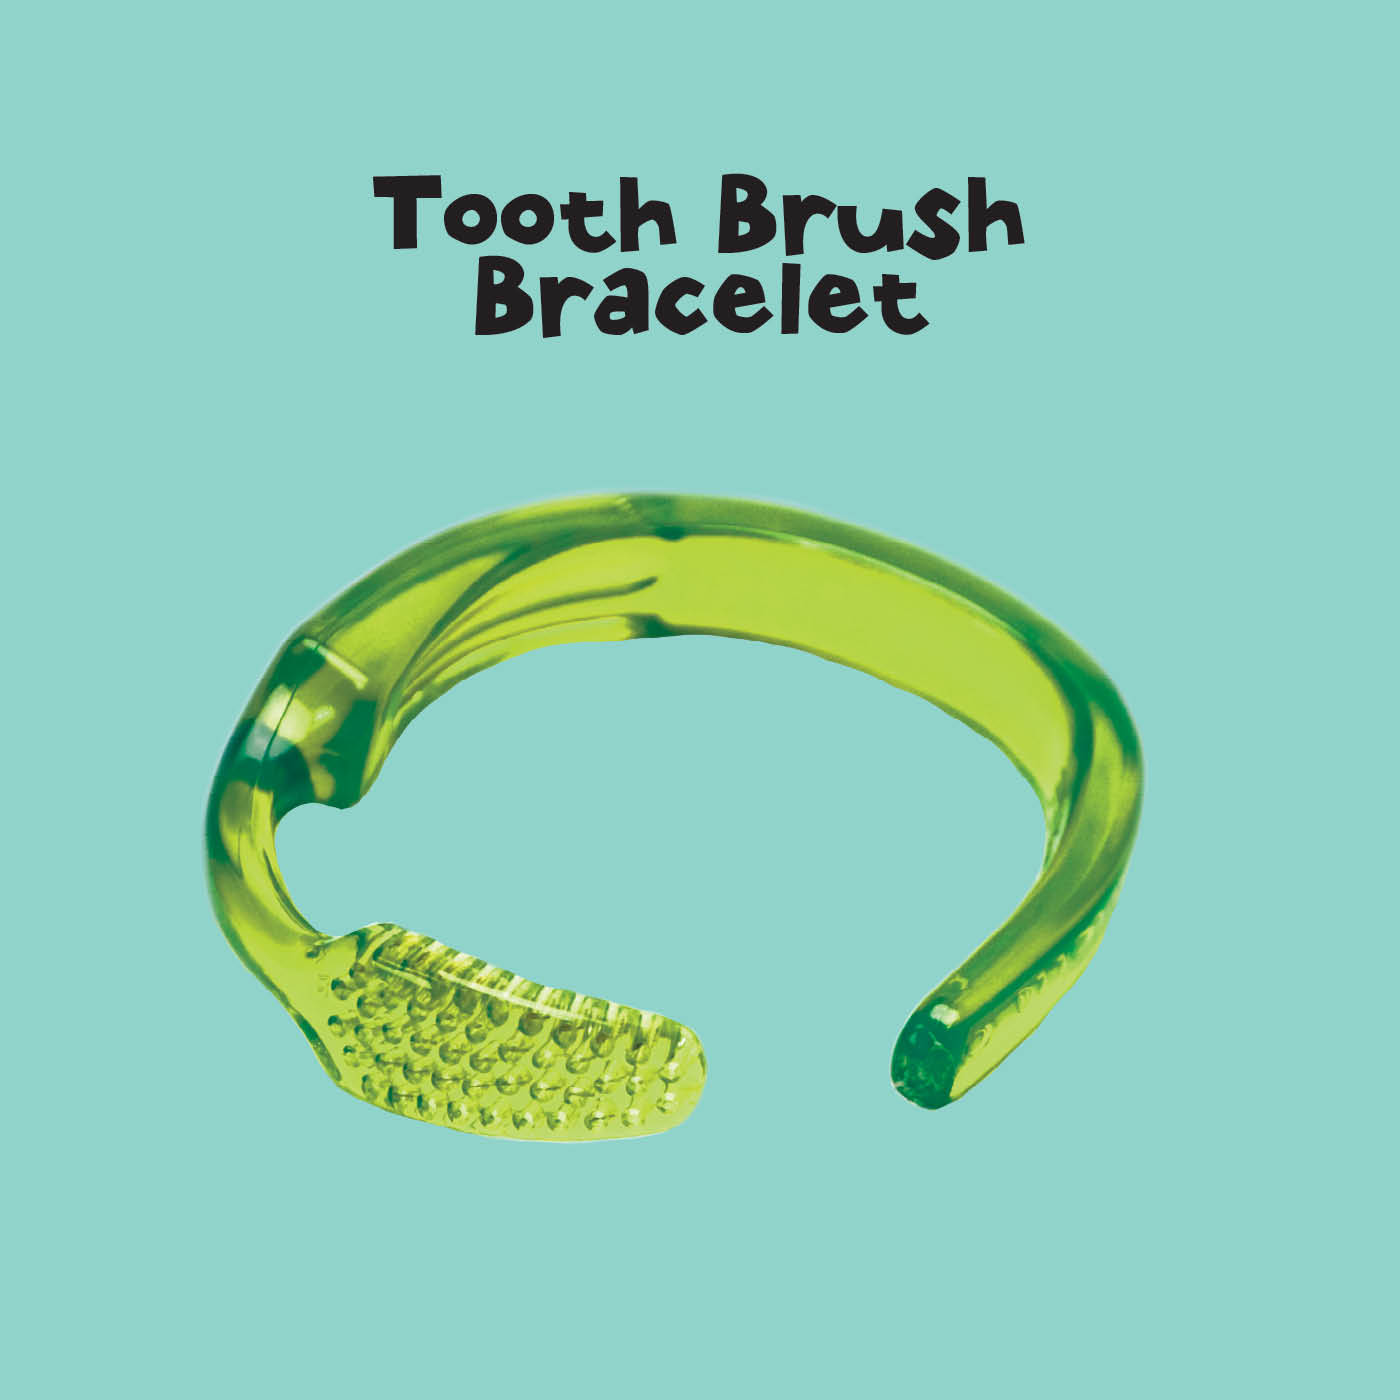 How to make a toothbrush bracelet